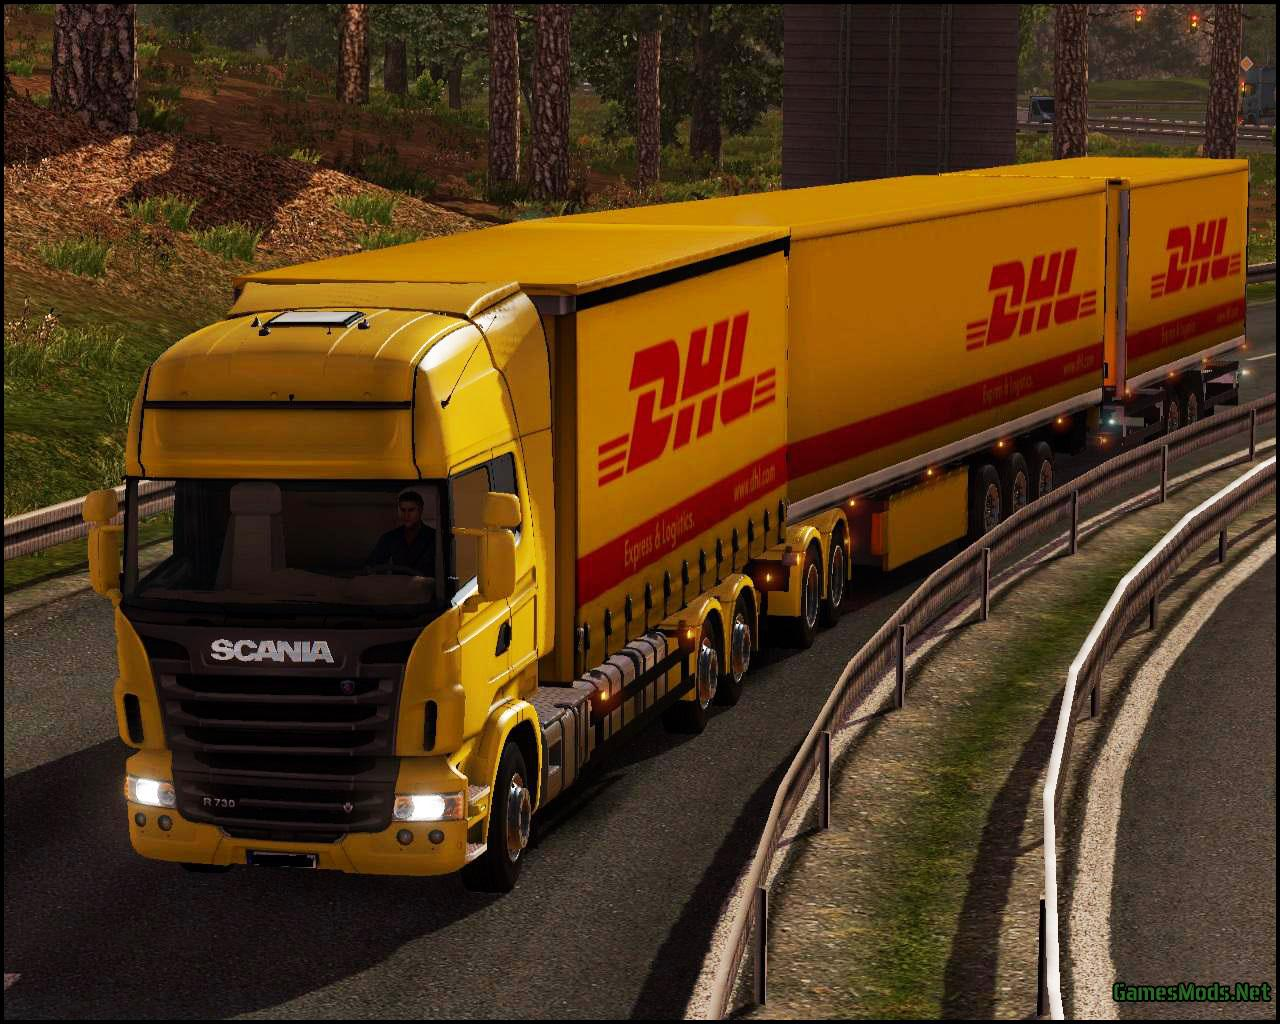 Dhl Wallpaper   Euro Truck Simulator 2 510394   HD Wallpaper 1280x1024